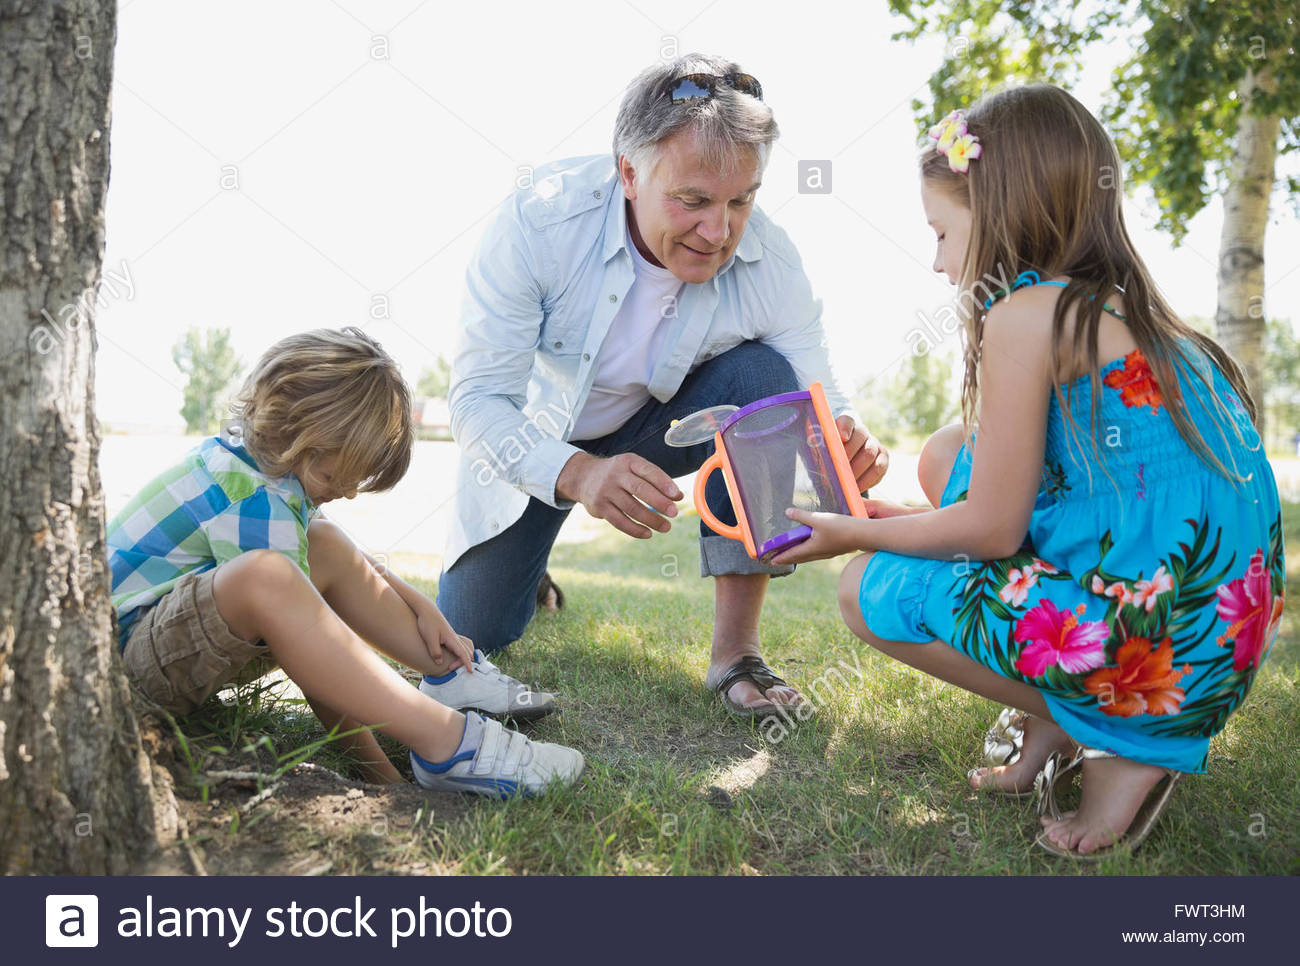 Grandfather and girl looking at insect in container - Stock Image